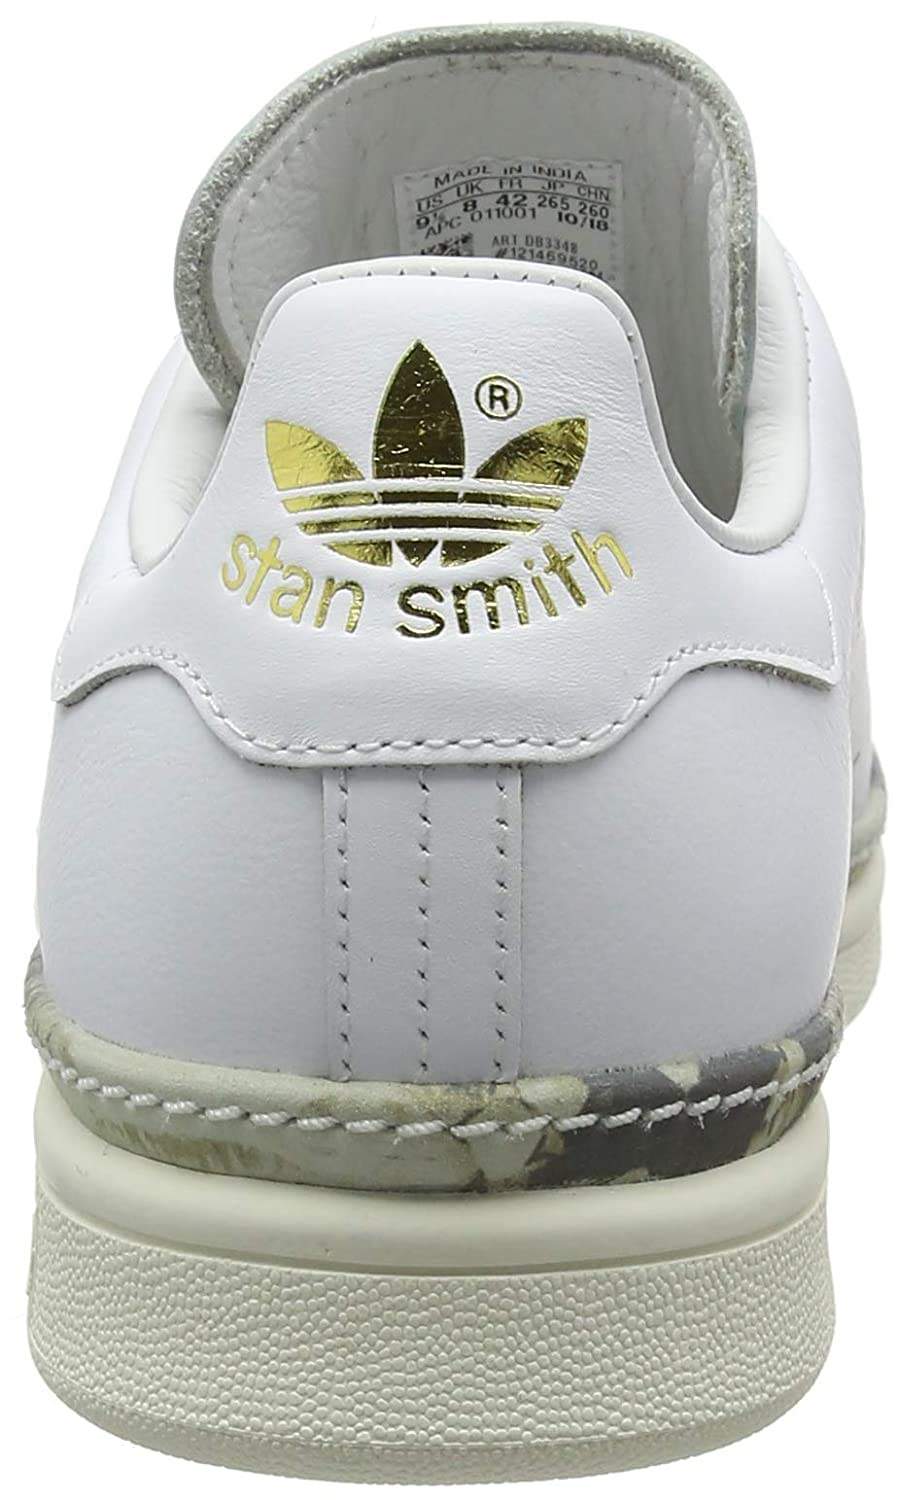 Stan Smith Fitness Adidas WChaussures De Femme New Bold b6vYfg7y